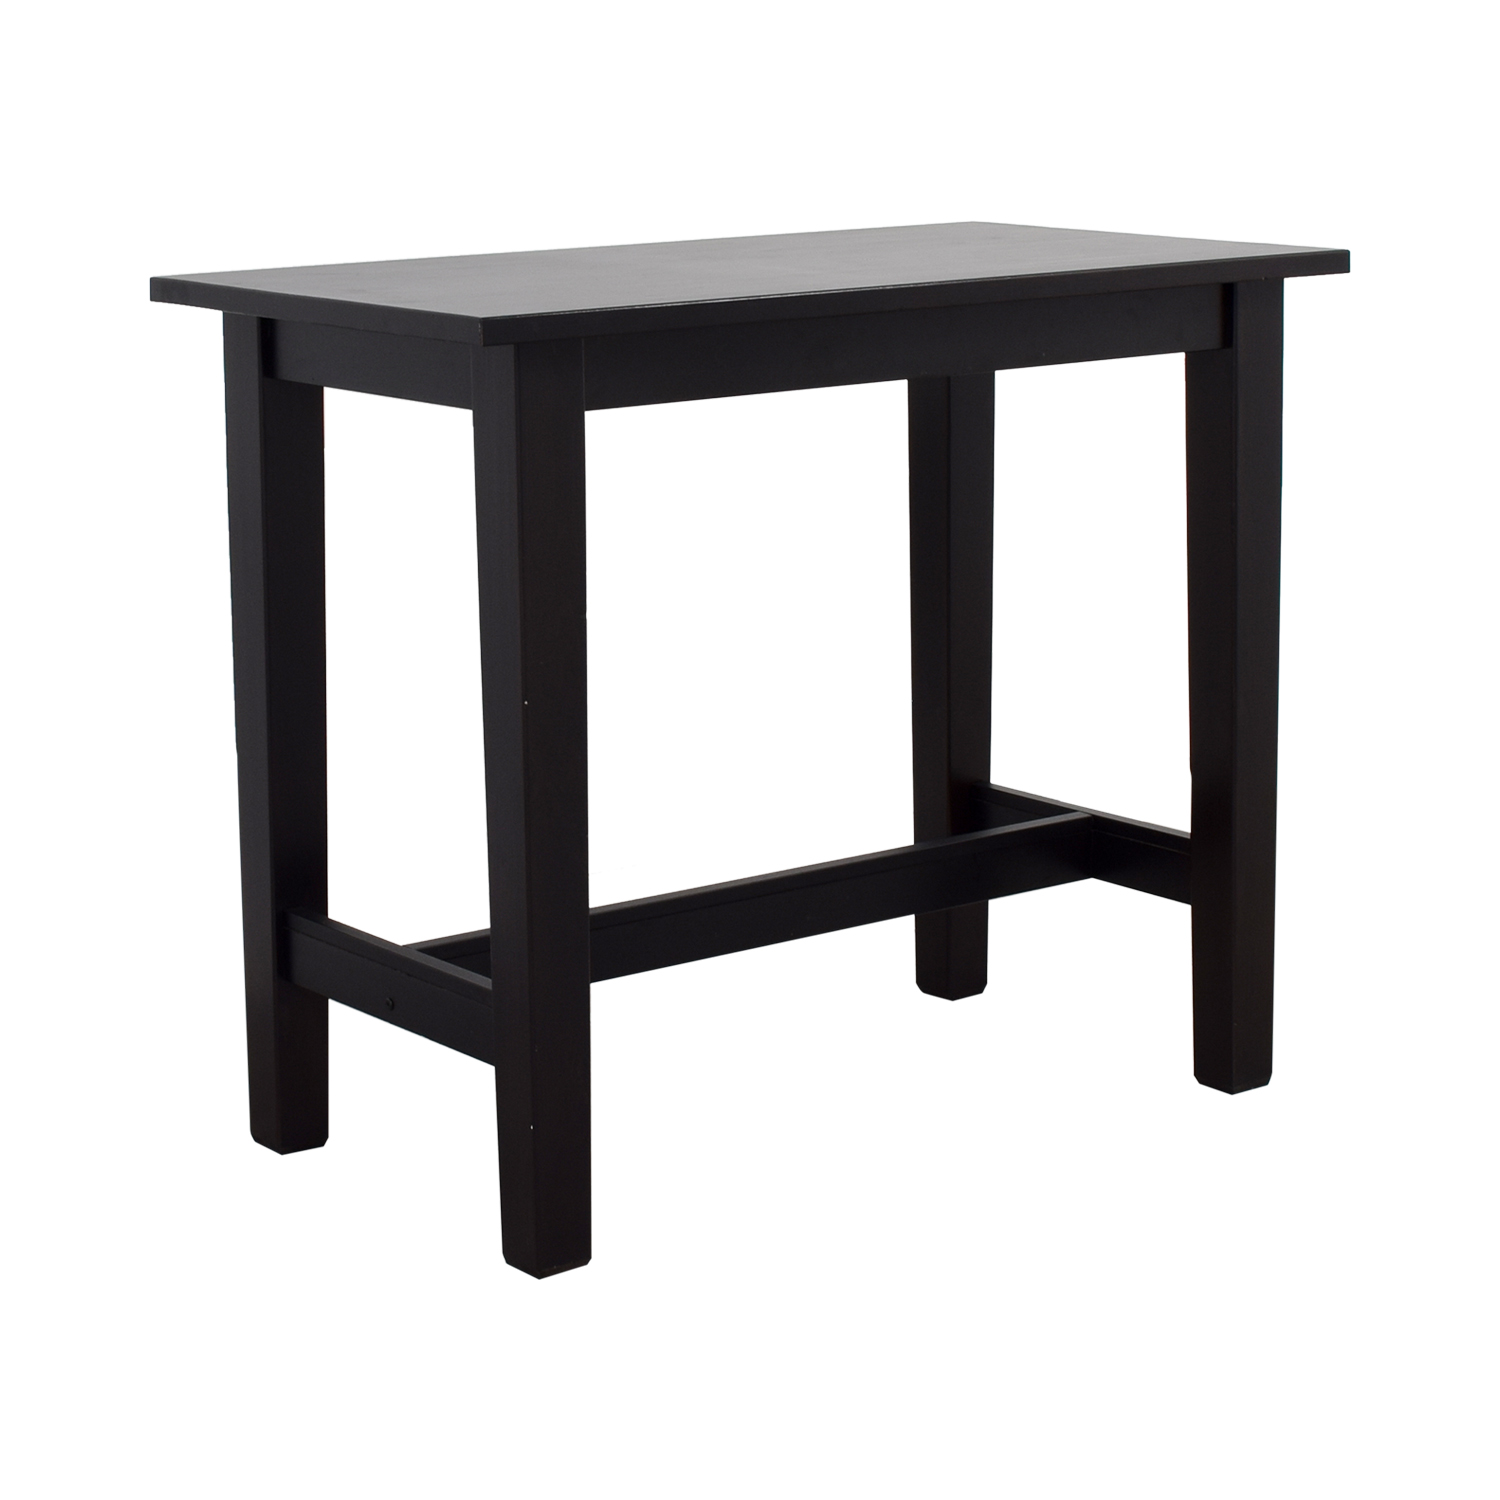 86 off ikea ikea pub table tables. Black Bedroom Furniture Sets. Home Design Ideas